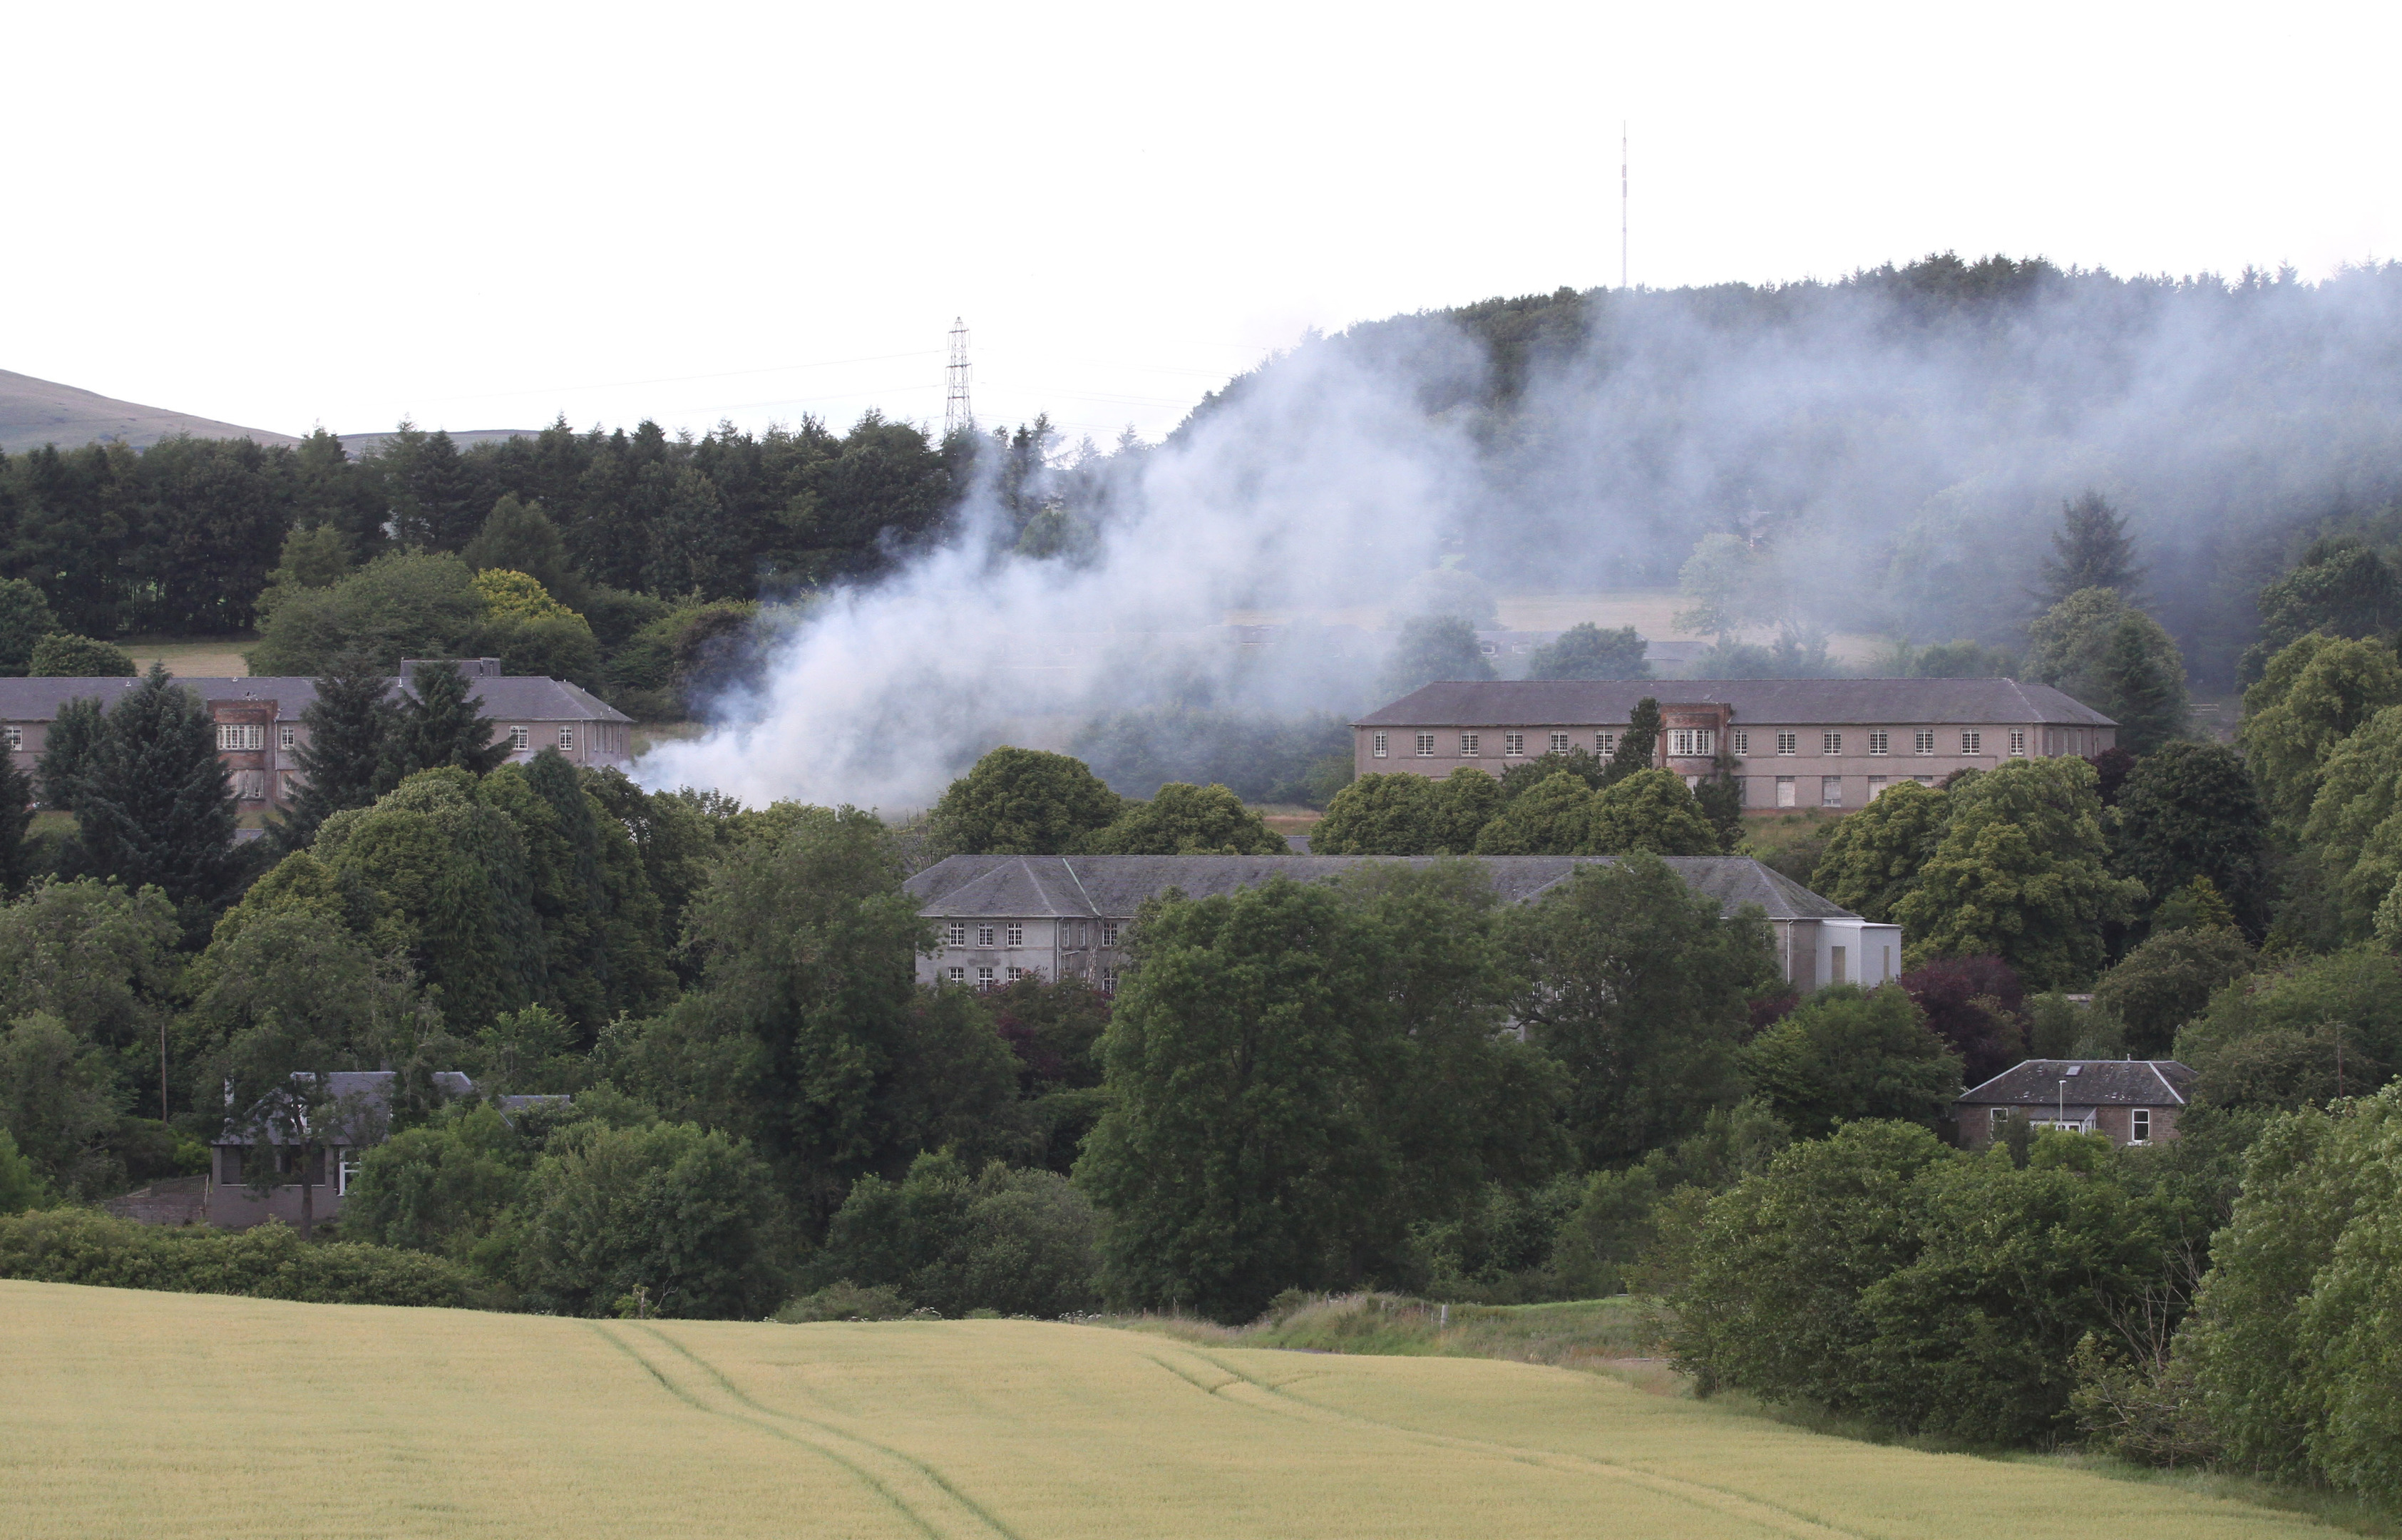 The fire at Strathmartine Hospital. Credit: Ron Cathro.